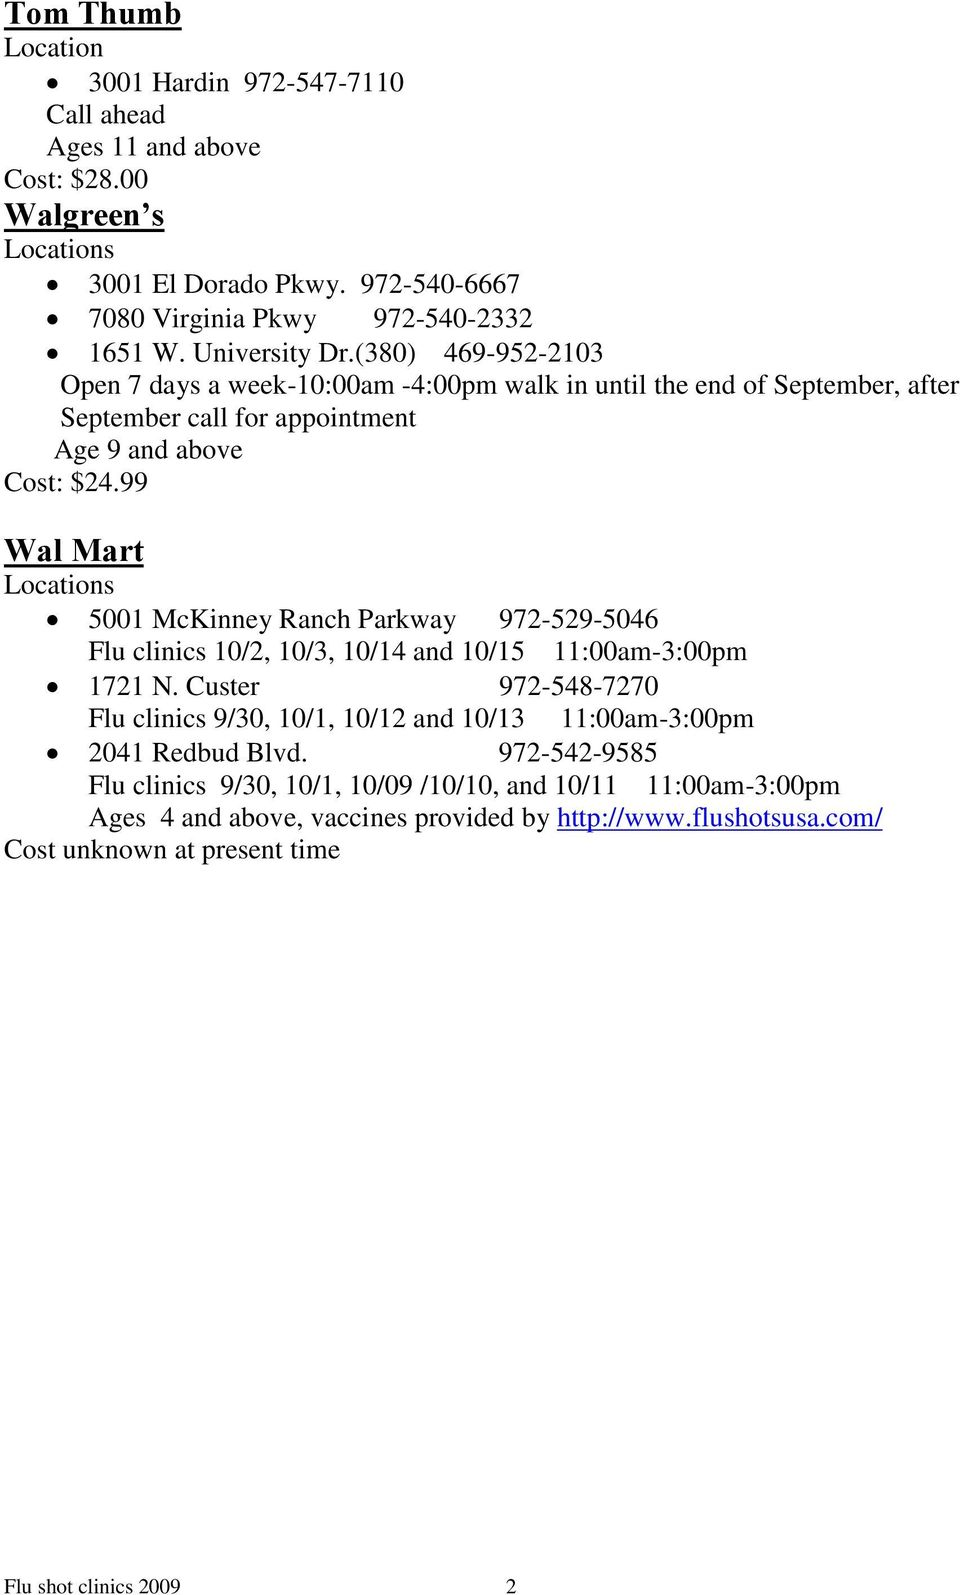 99 Wal Mart 5001 McKinney Ranch Parkway 972-529-5046 Flu clinics 10/2, 10/3, 10/14 and 10/15 11:00am-3:00pm 1721 N.